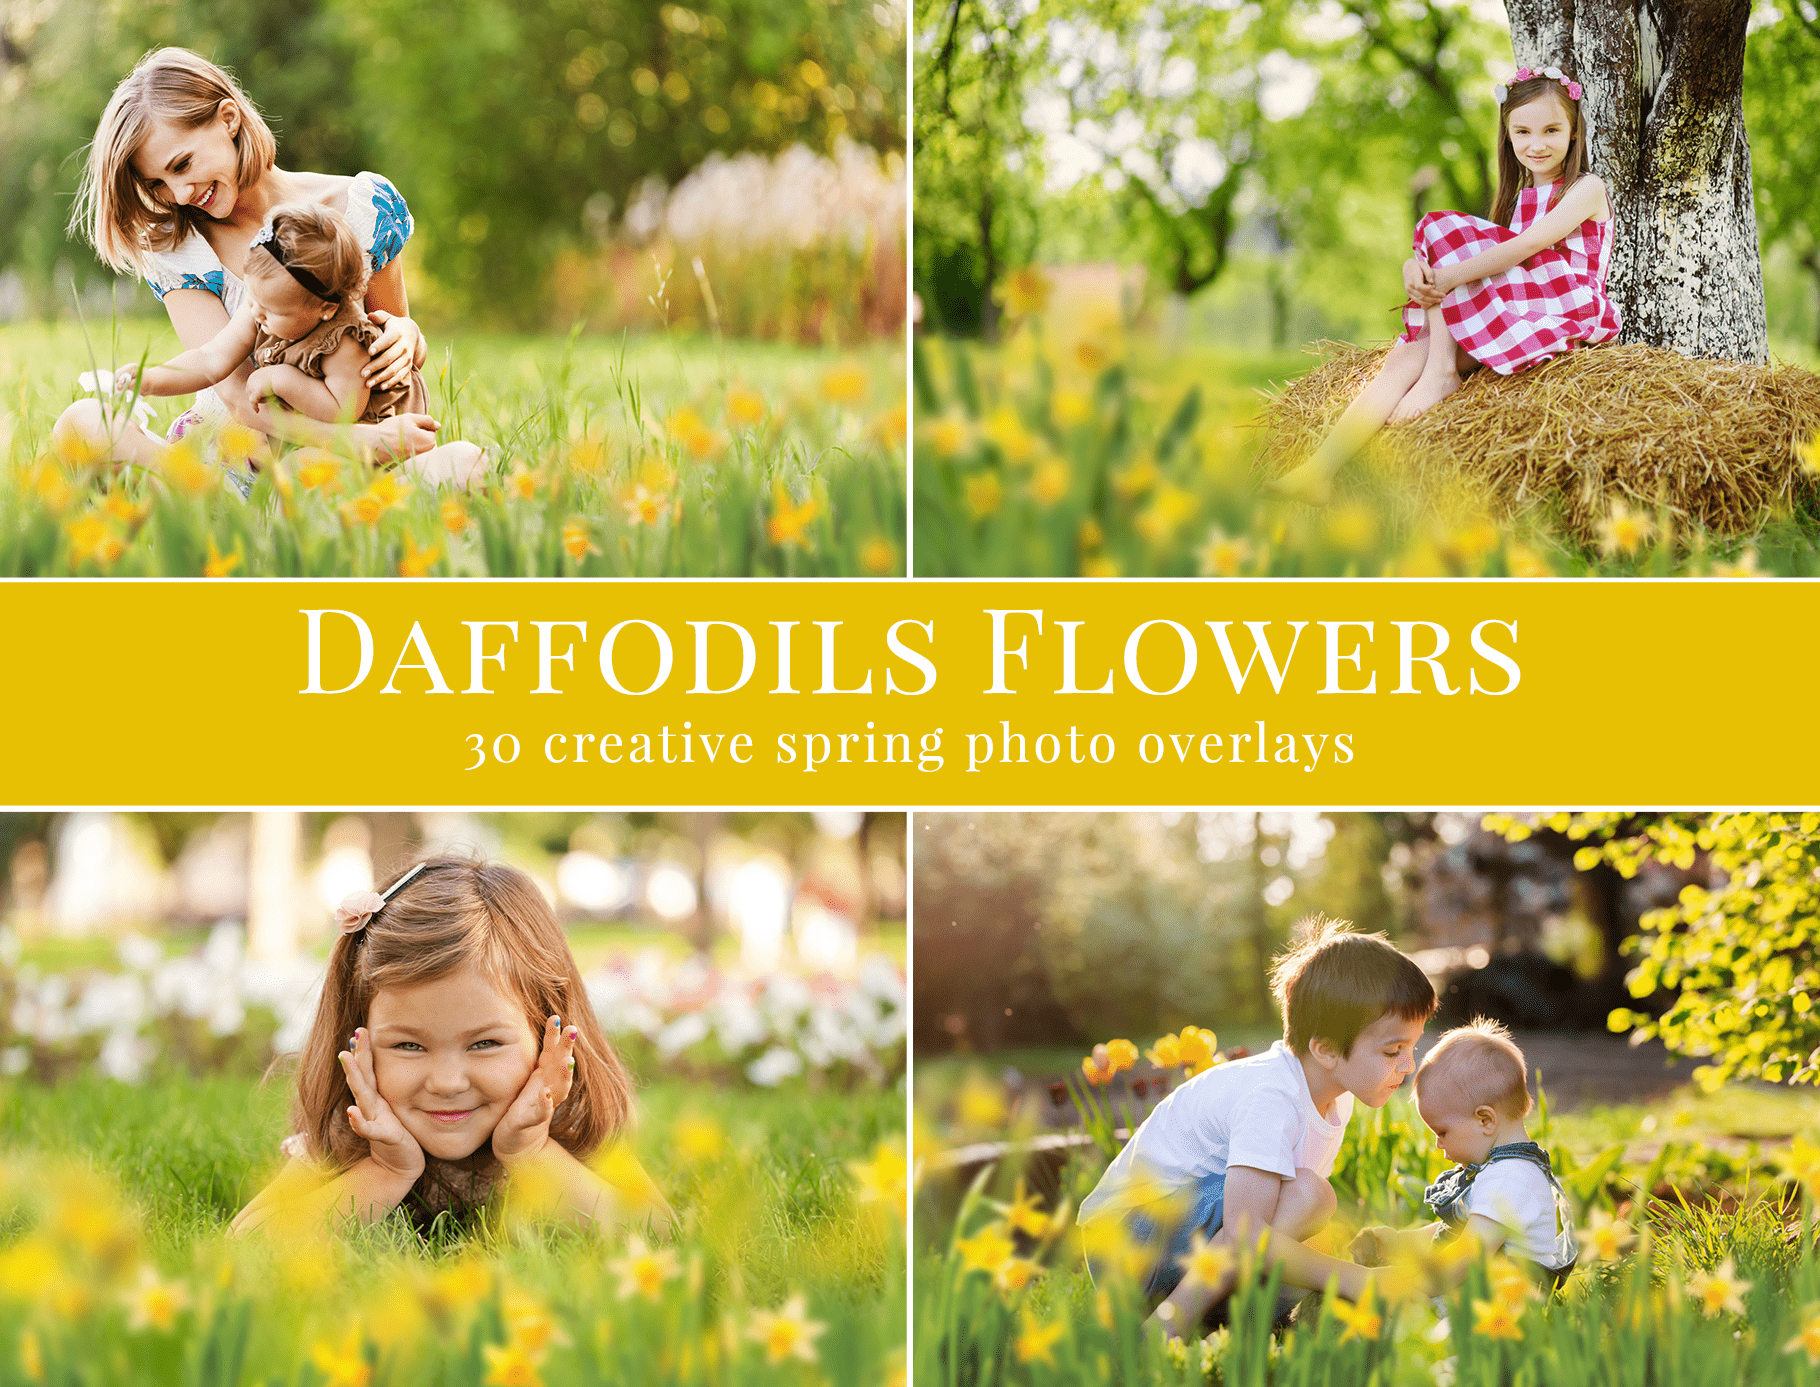 daffodils-flowers-photo-overlays